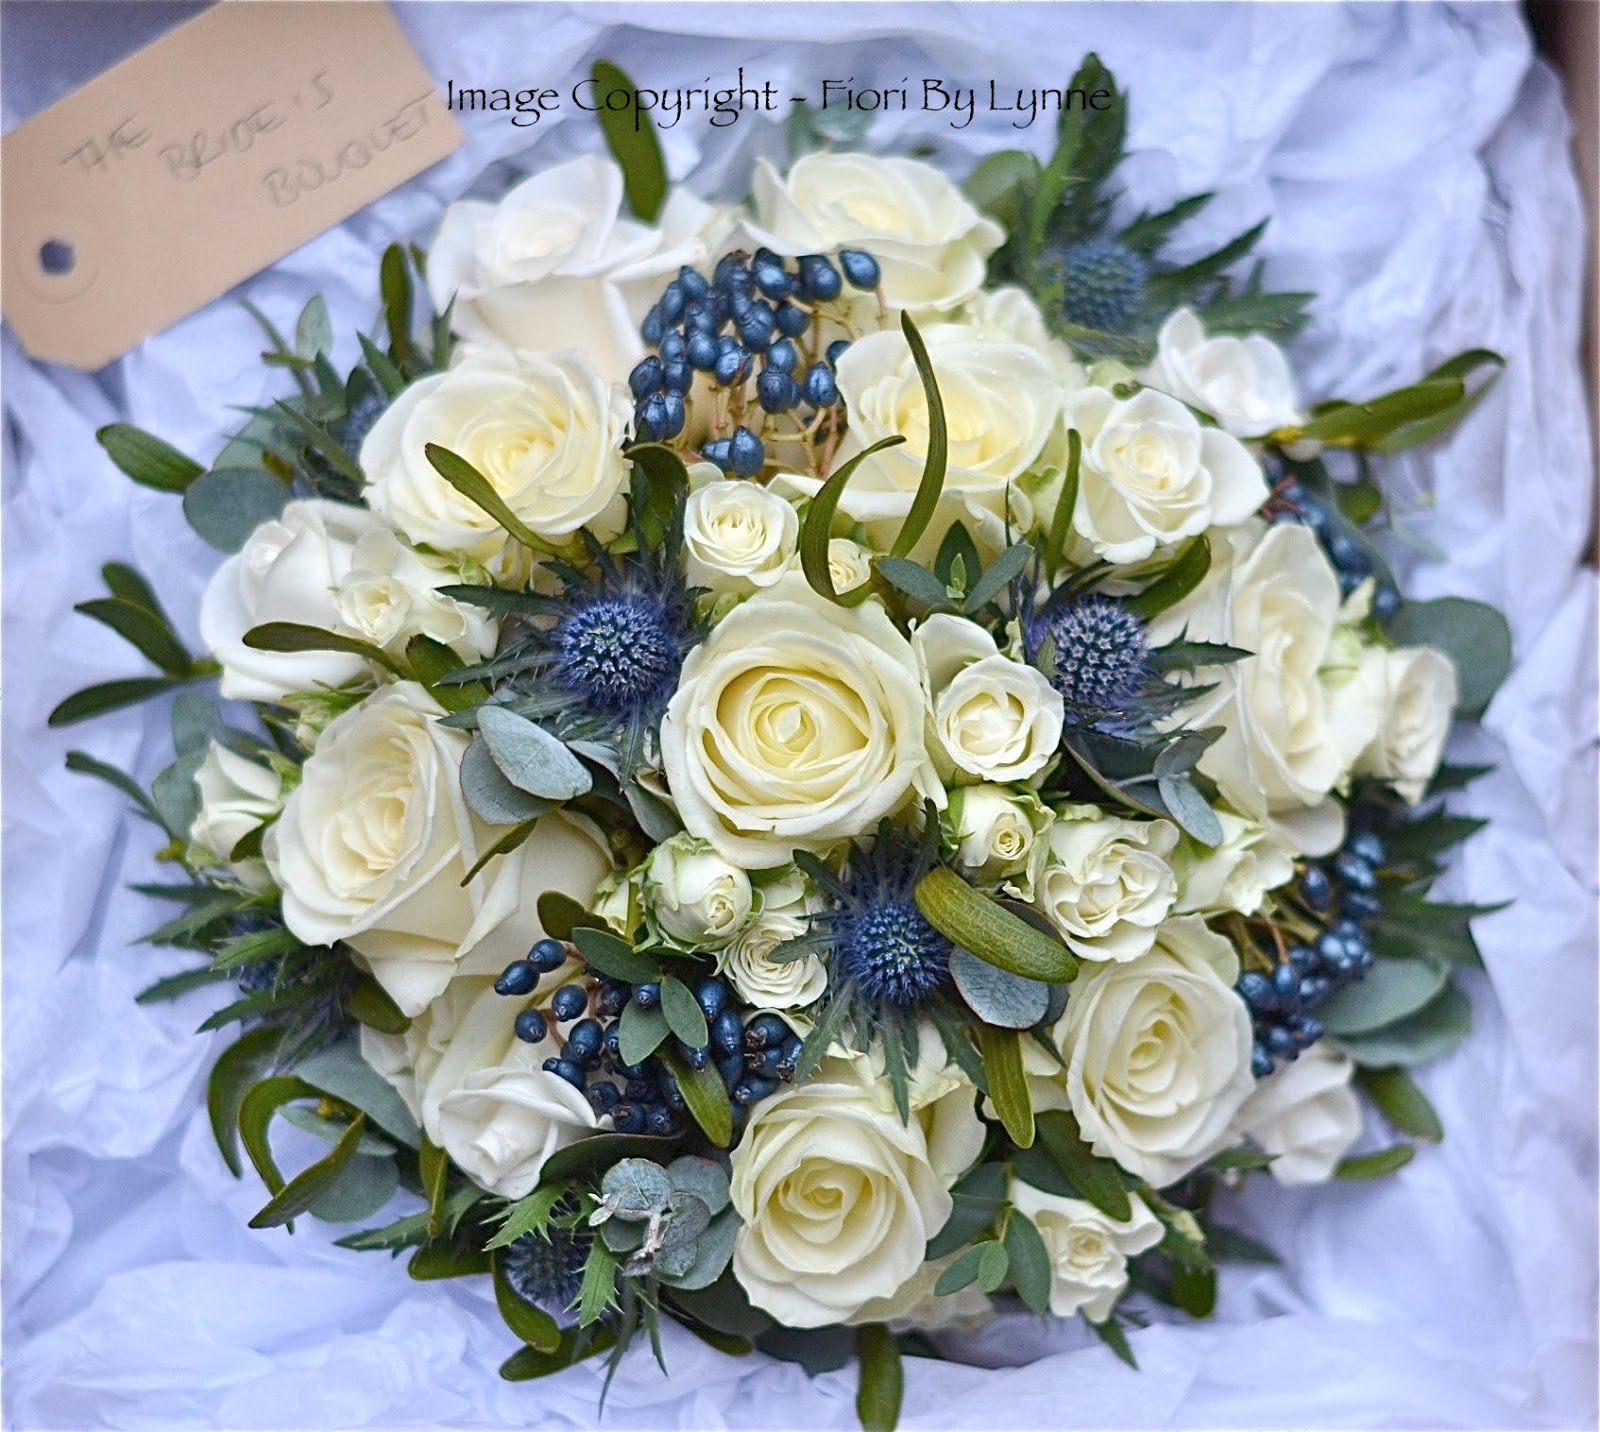 Christmas Wedding Flower Ideas: Wedding Flowers Blog: Laura's Christmas Wedding Flowers